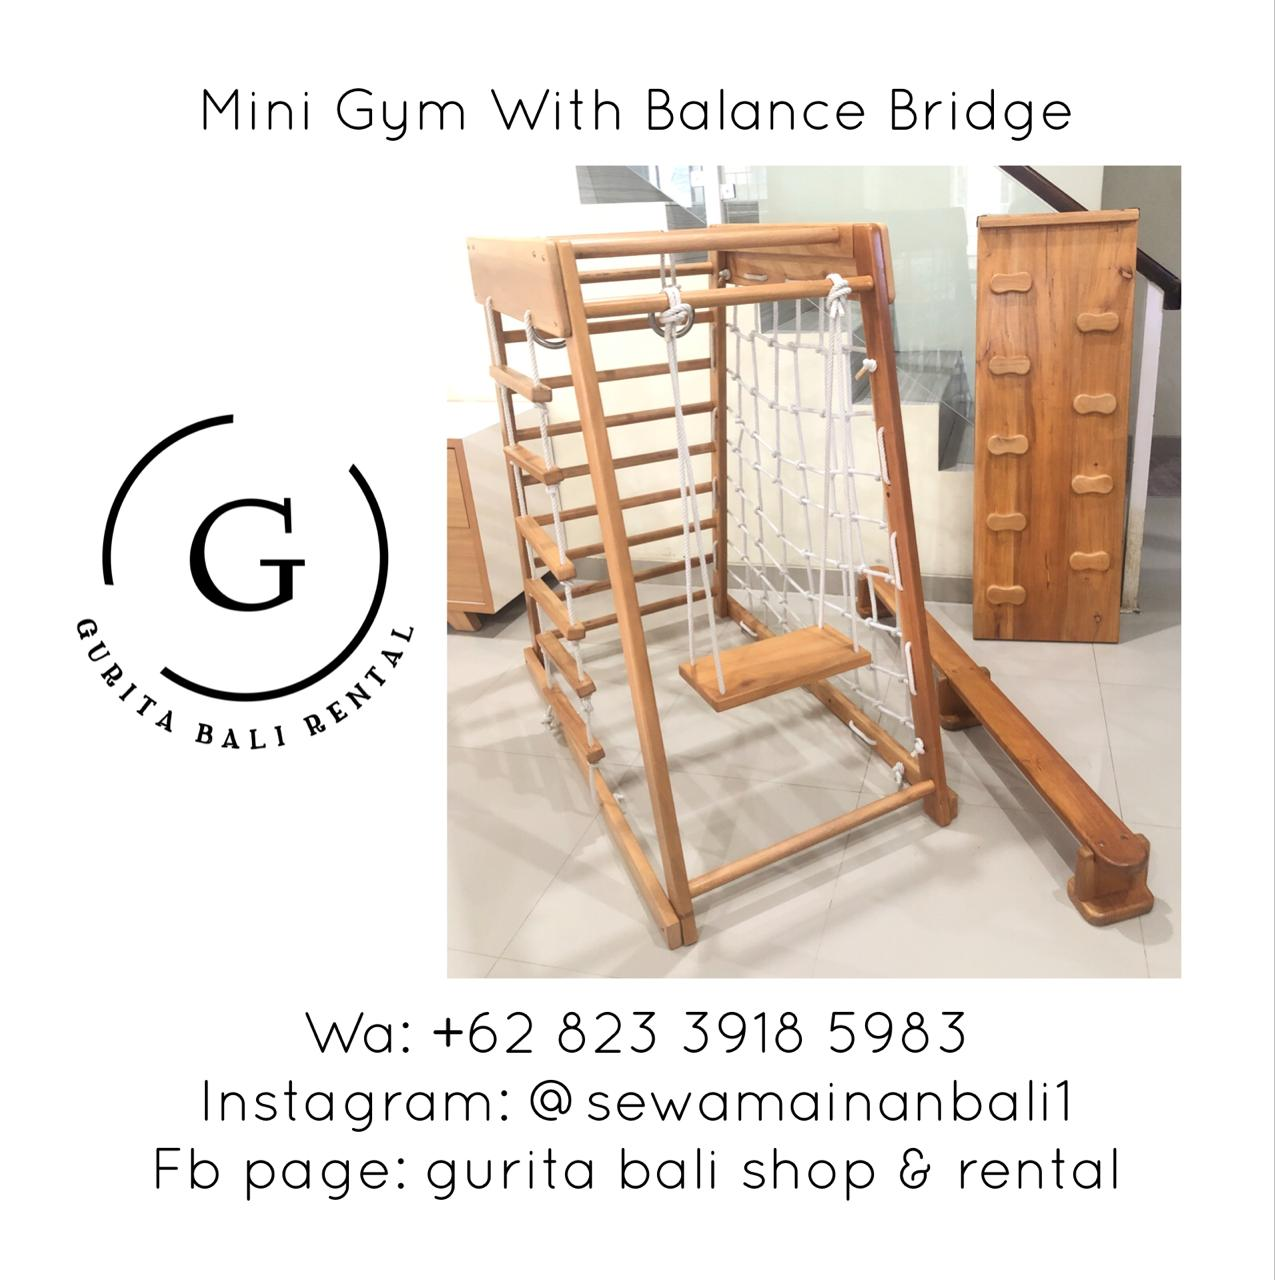 MINI GYM WITH BALANCE BRIDGE